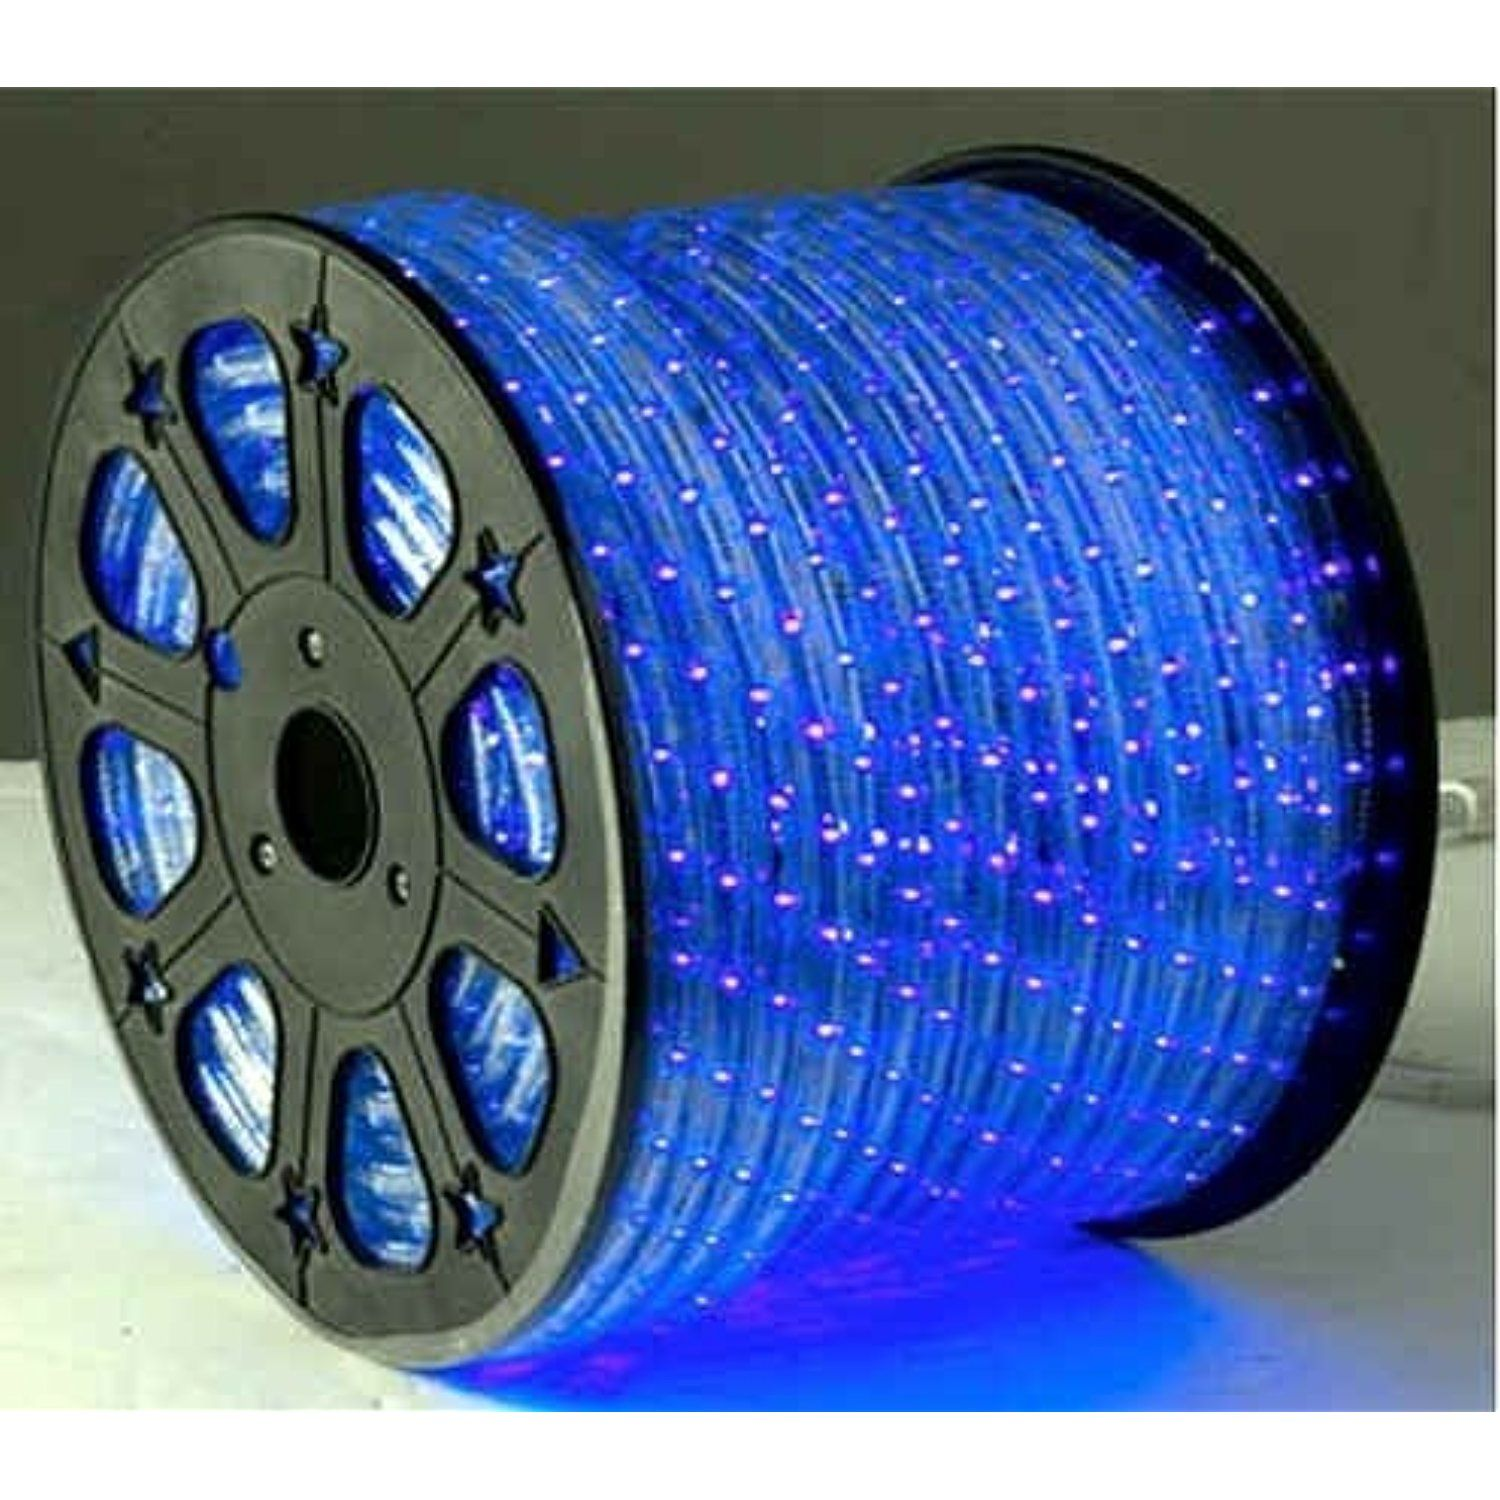 Blue 12 V Volts Dc Led Rope Lights Auto Lighting 9 Meters 29 5 Feet Read More At The Image Link This Is An Affiliate Led Rope Lights Rope Lights Led Rope